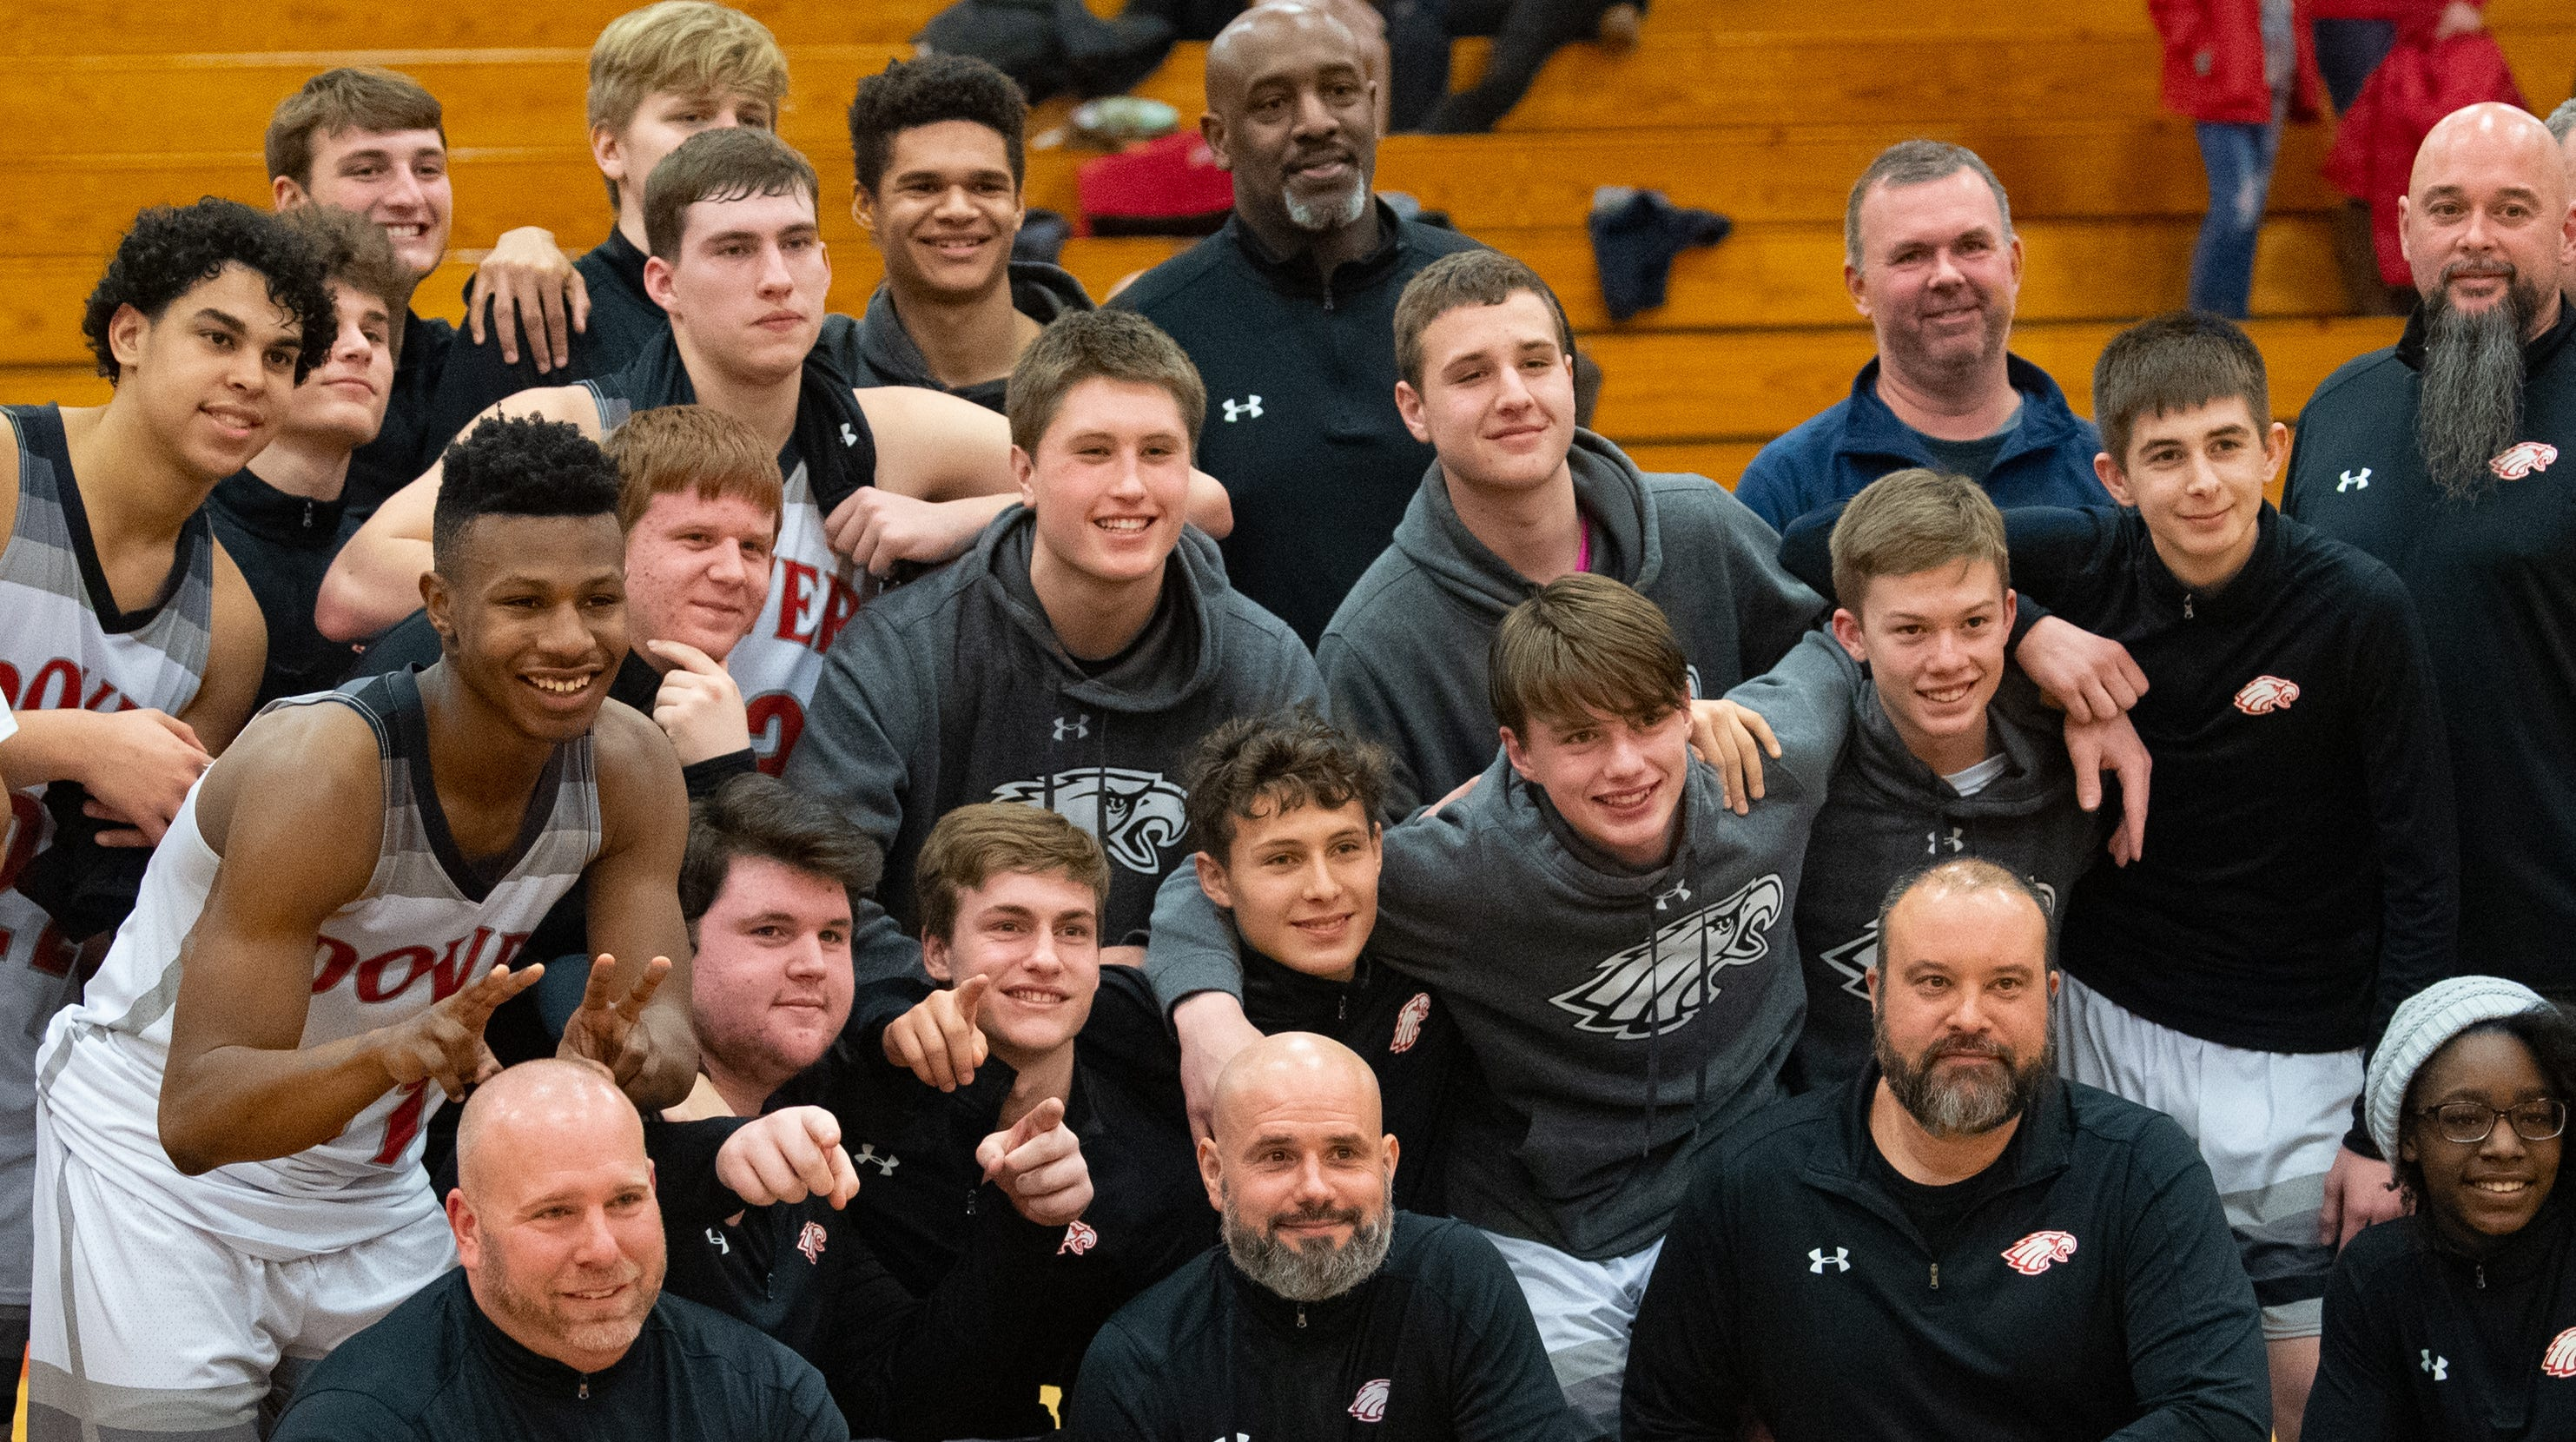 After receiving a plaque, scrapbook and signed basketball, Dover head coach Brian Schmoyer took a picture with the entire team, February 1, 2019.